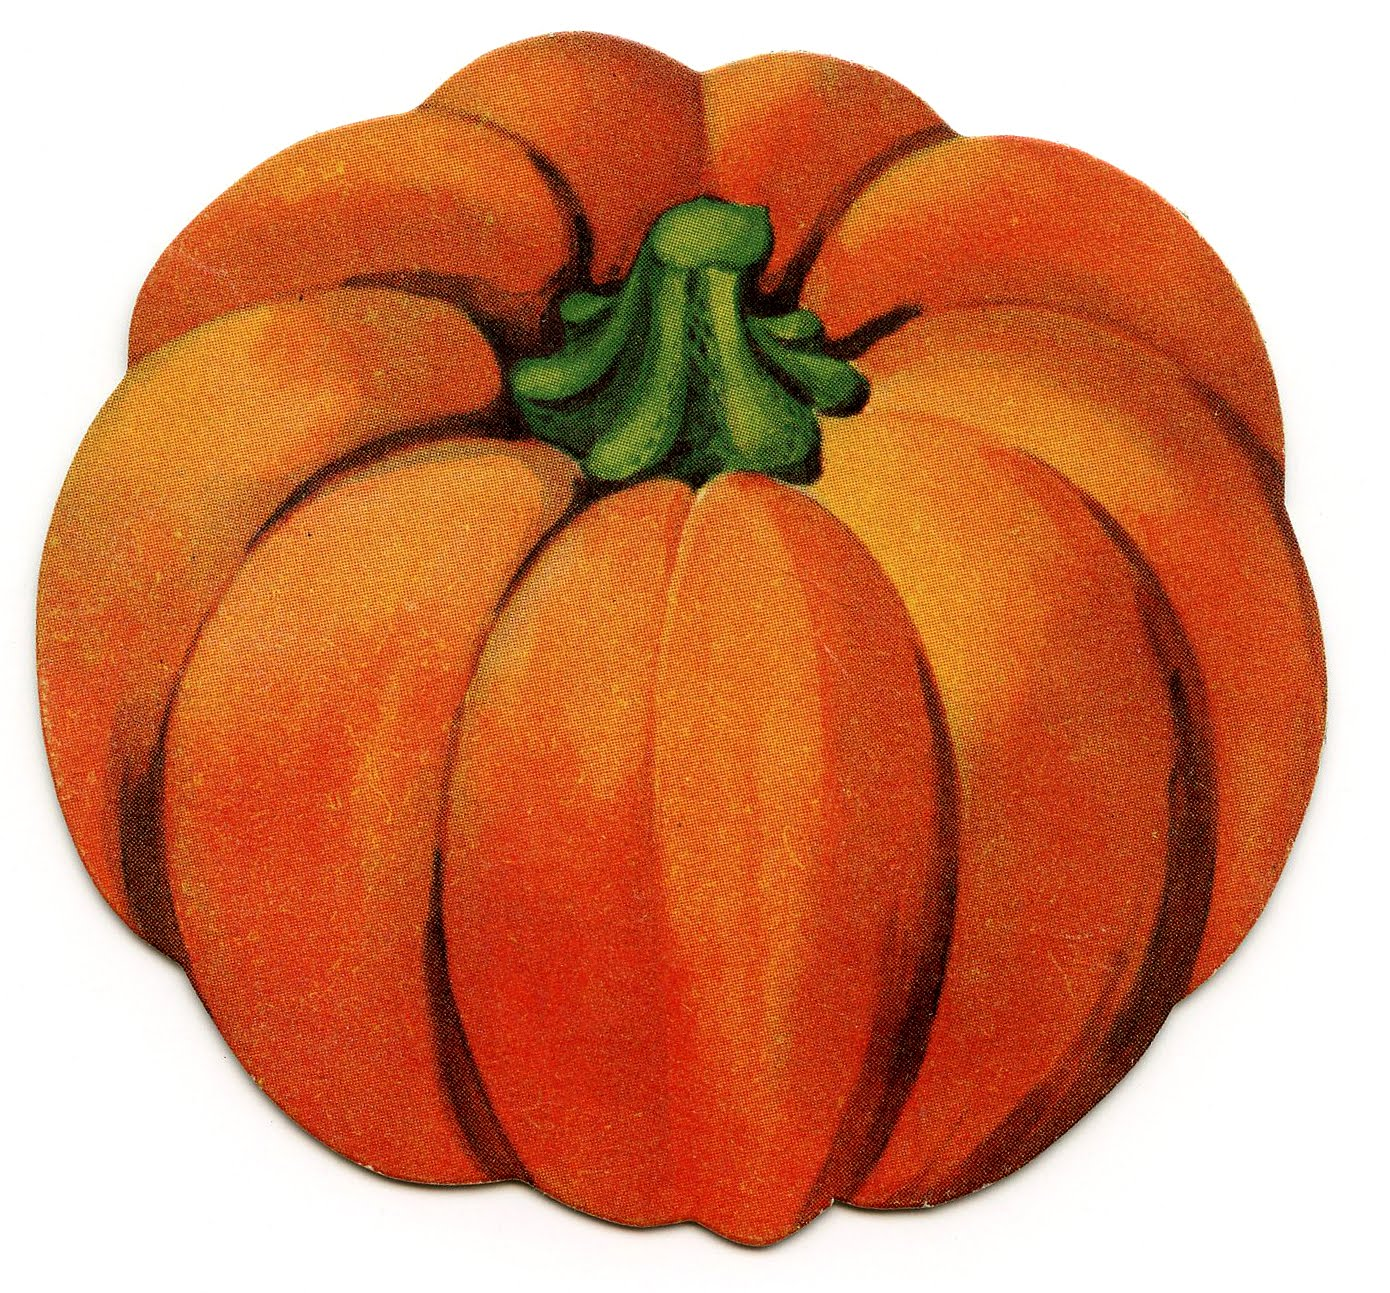 vintage halloween clip art - cute little pumpkin - the graphics fairy